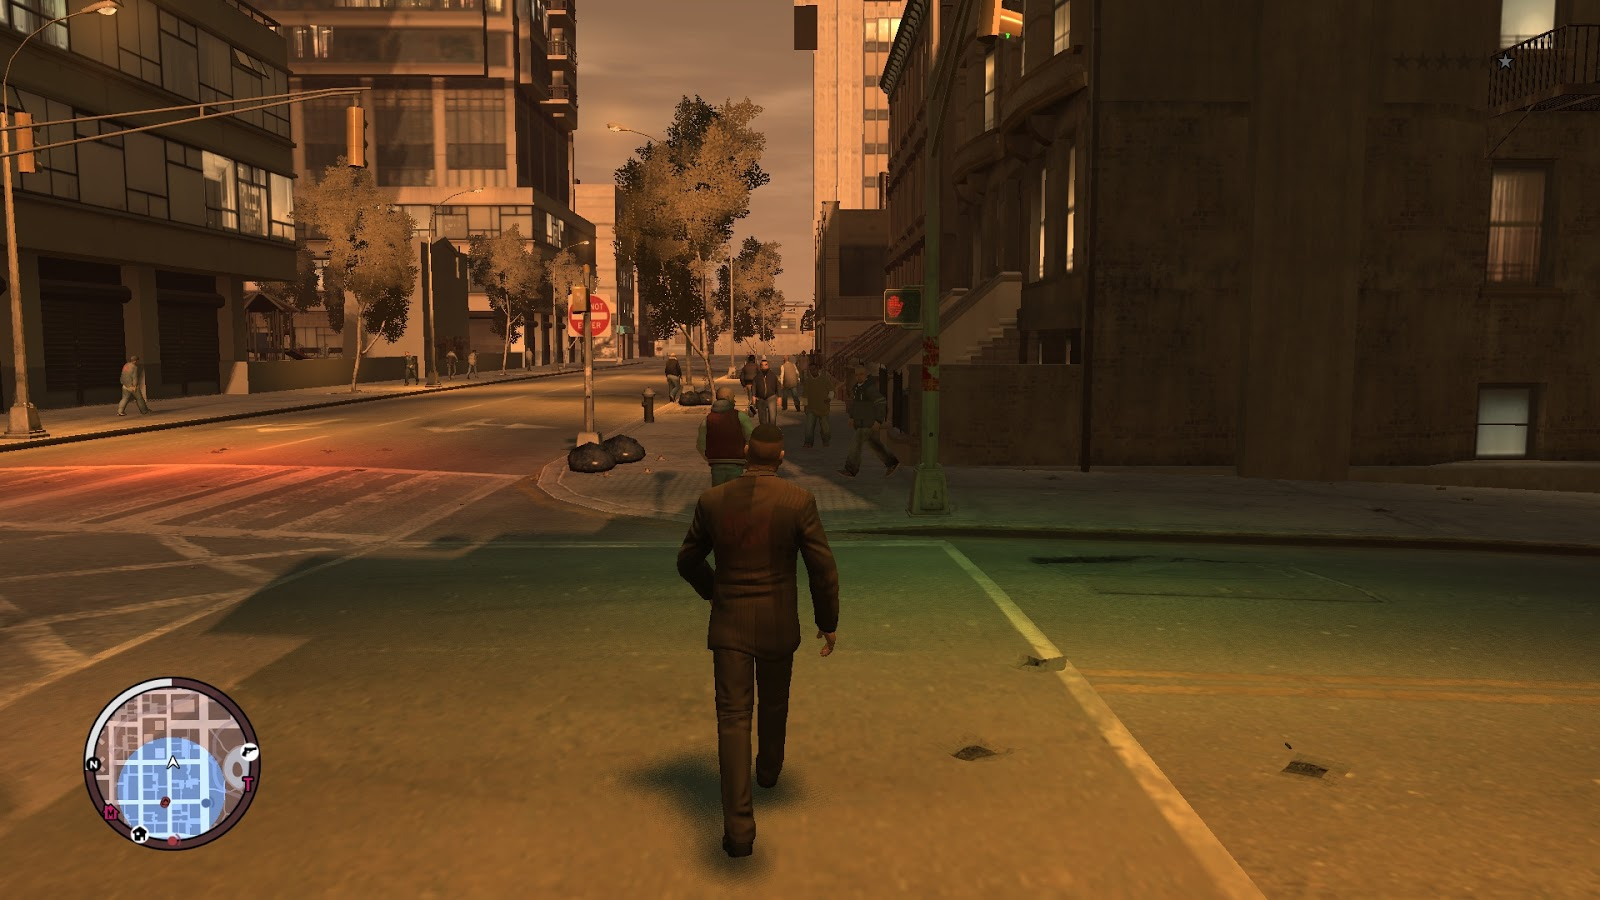 GTA - Episodes from Liberty City